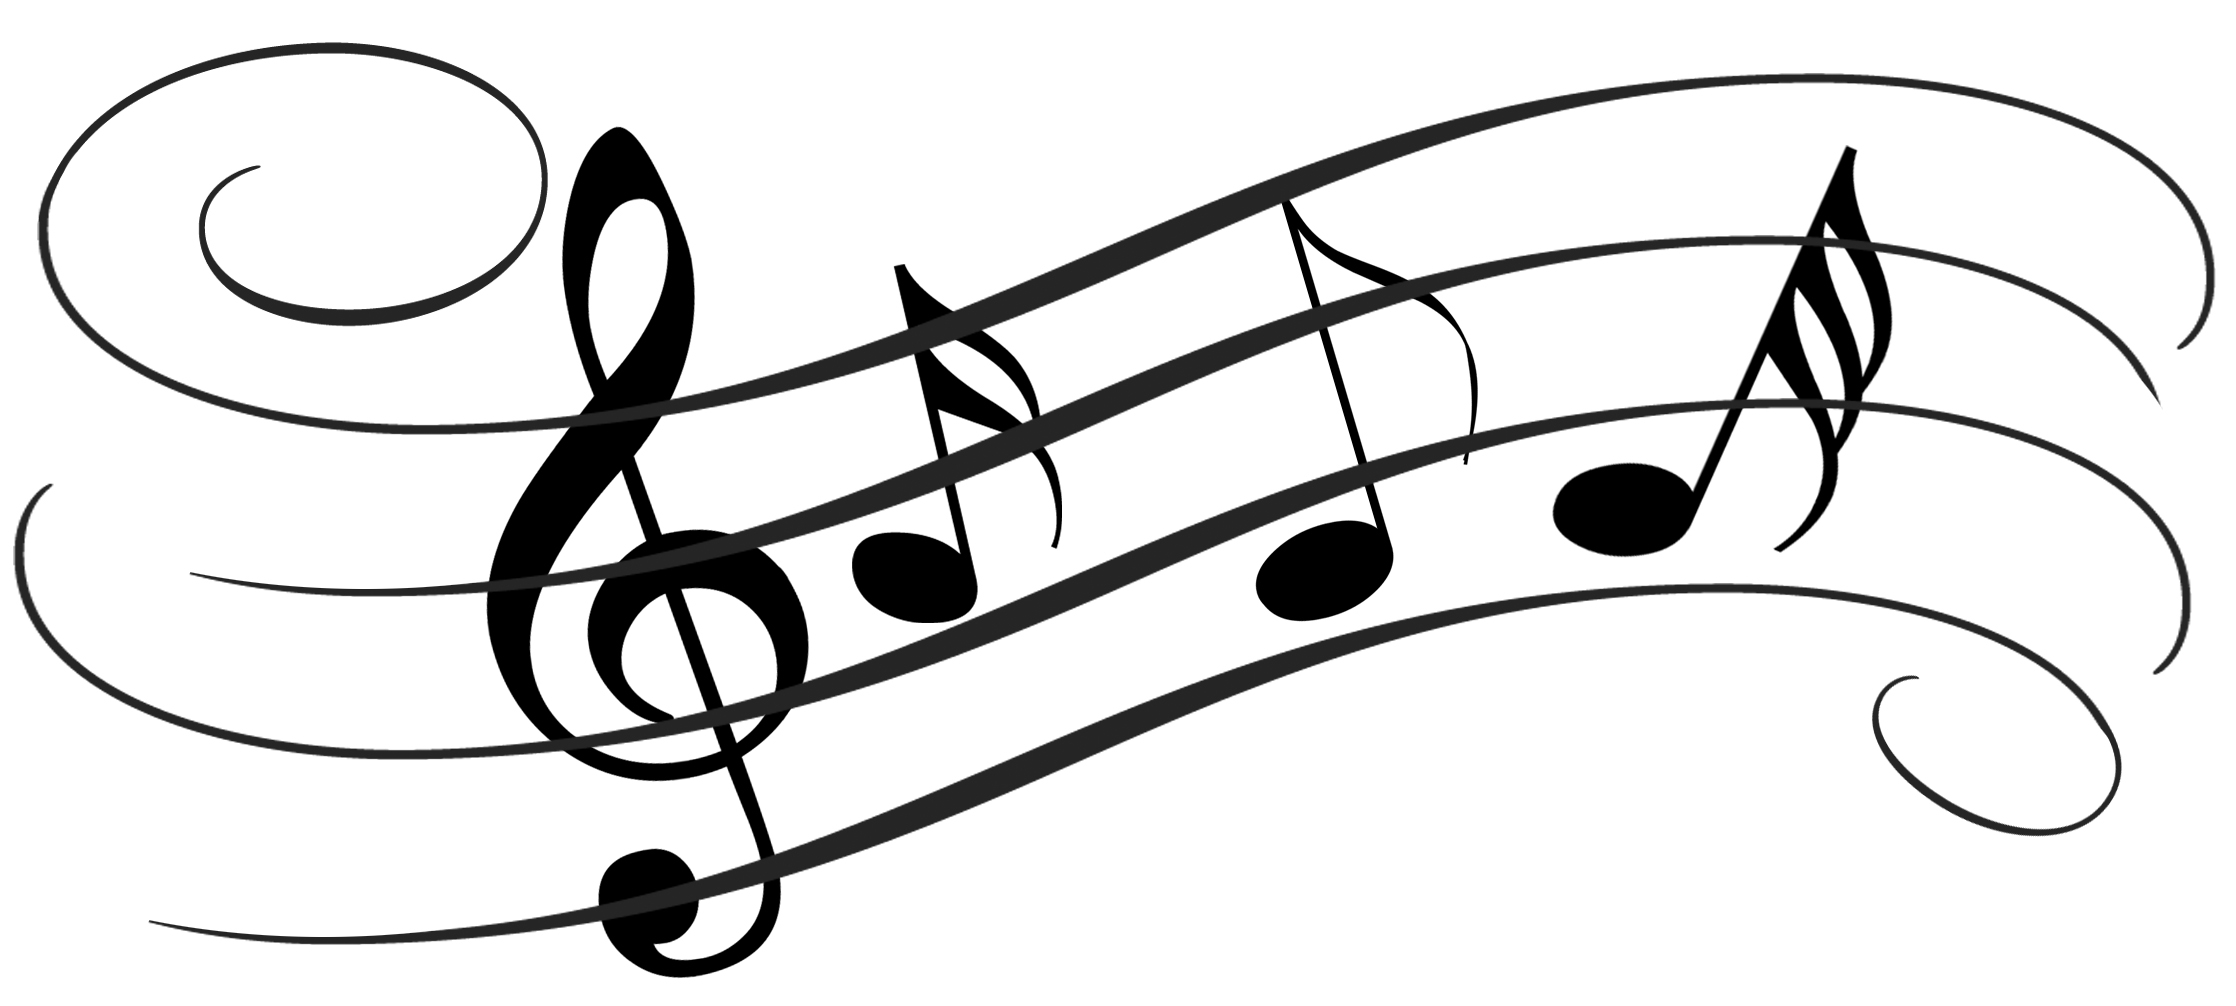 Image result for music note pictures